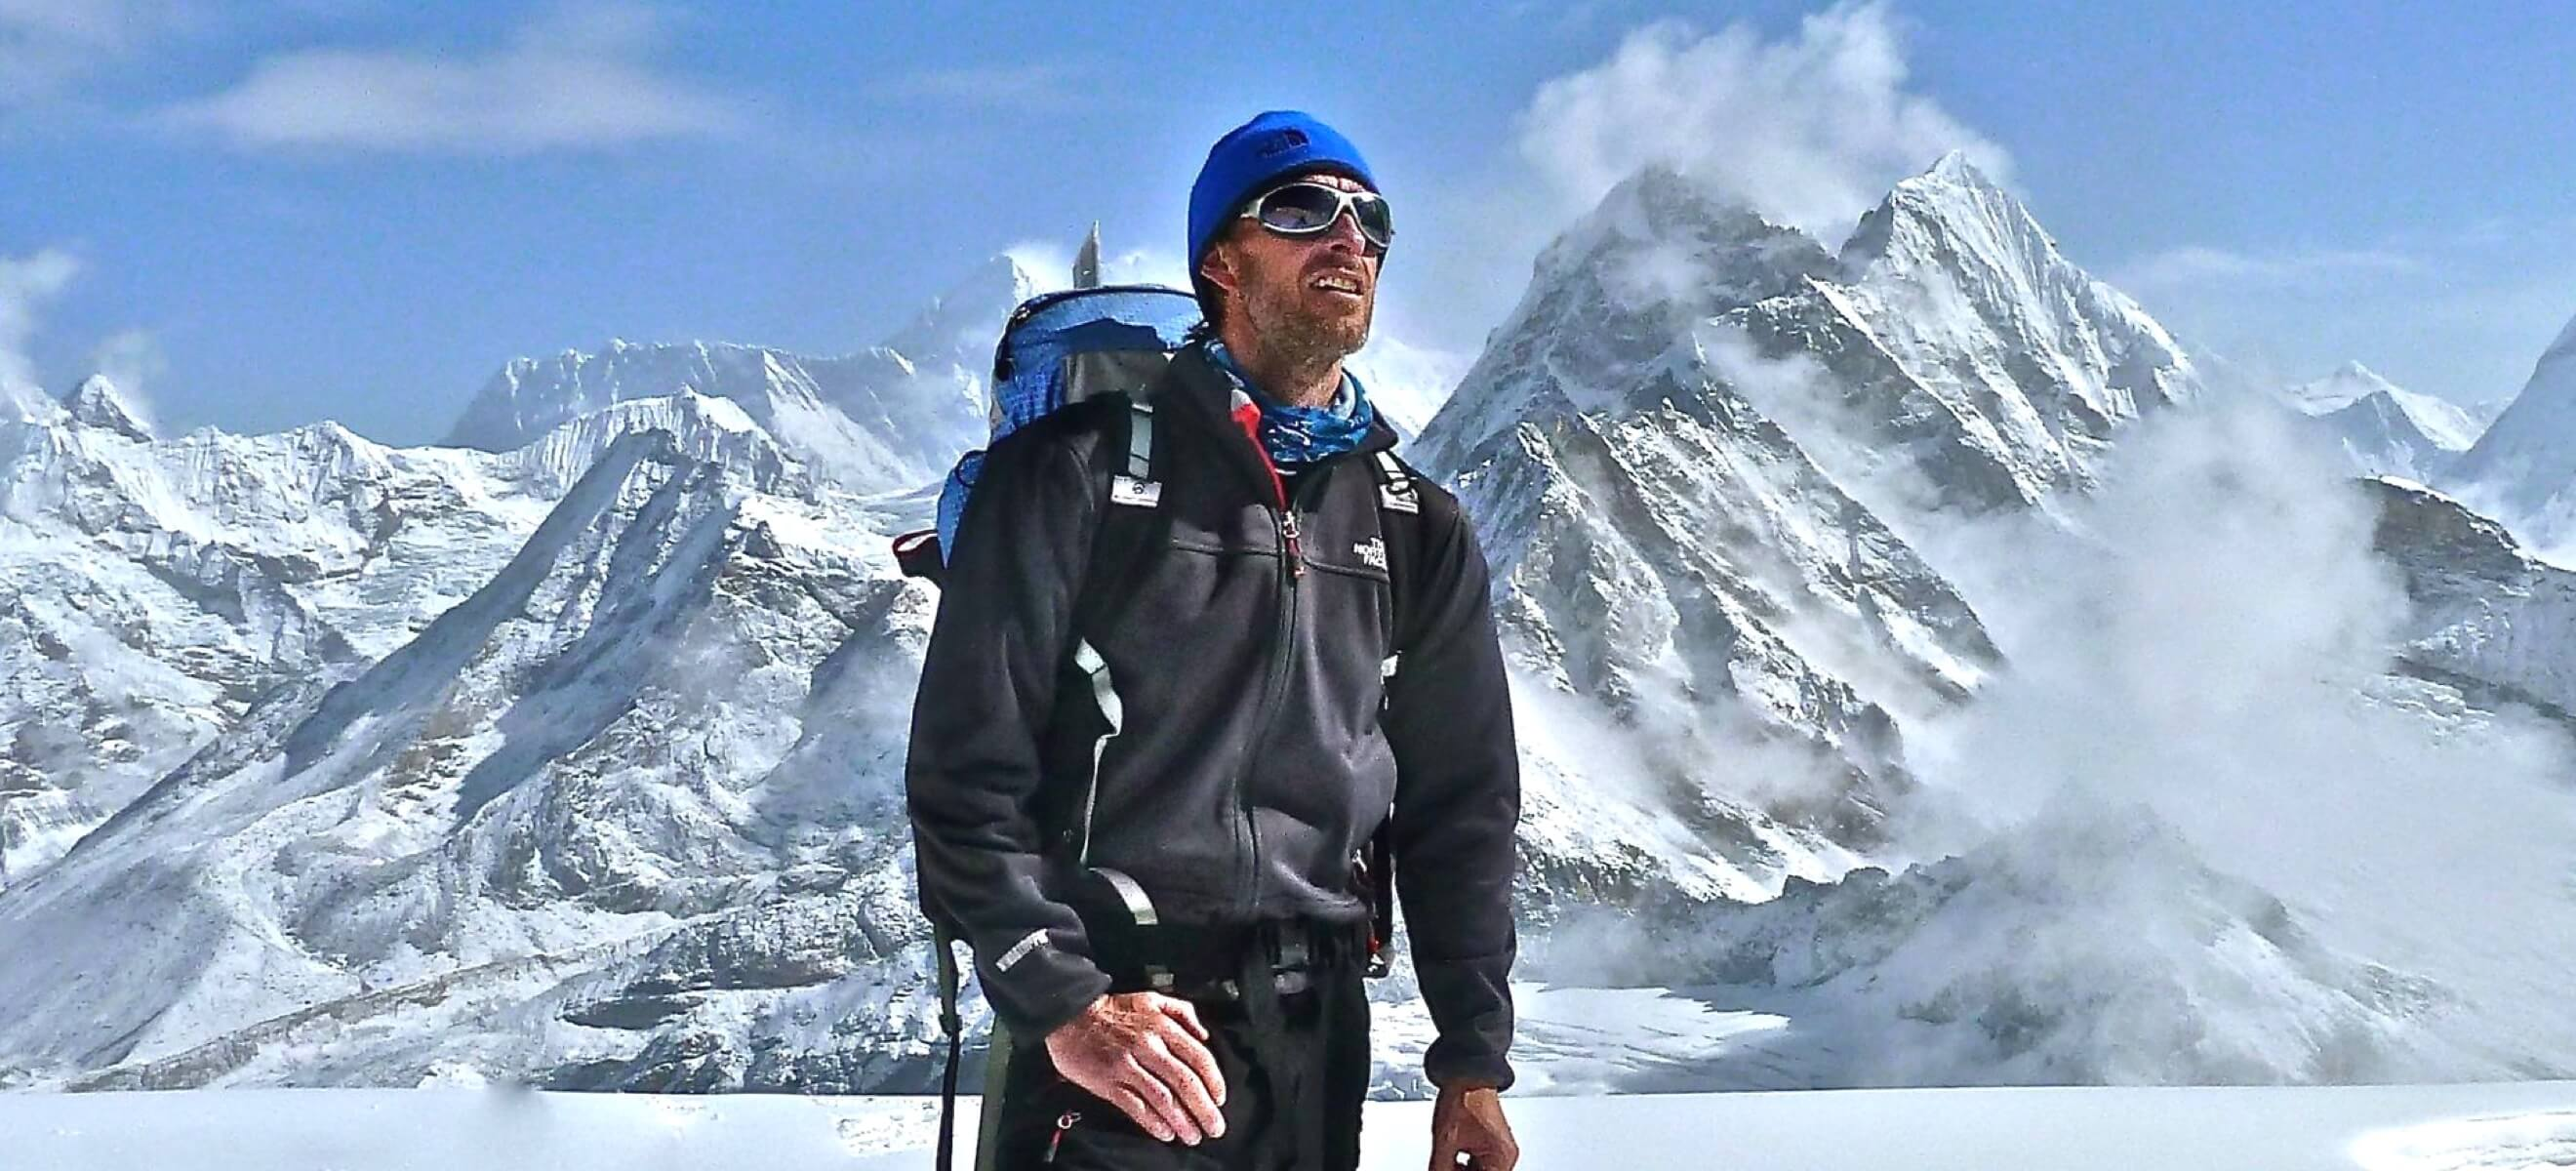 Gabriel Filippi and Organ Donation: A Cause Equal to the Height of Everest!